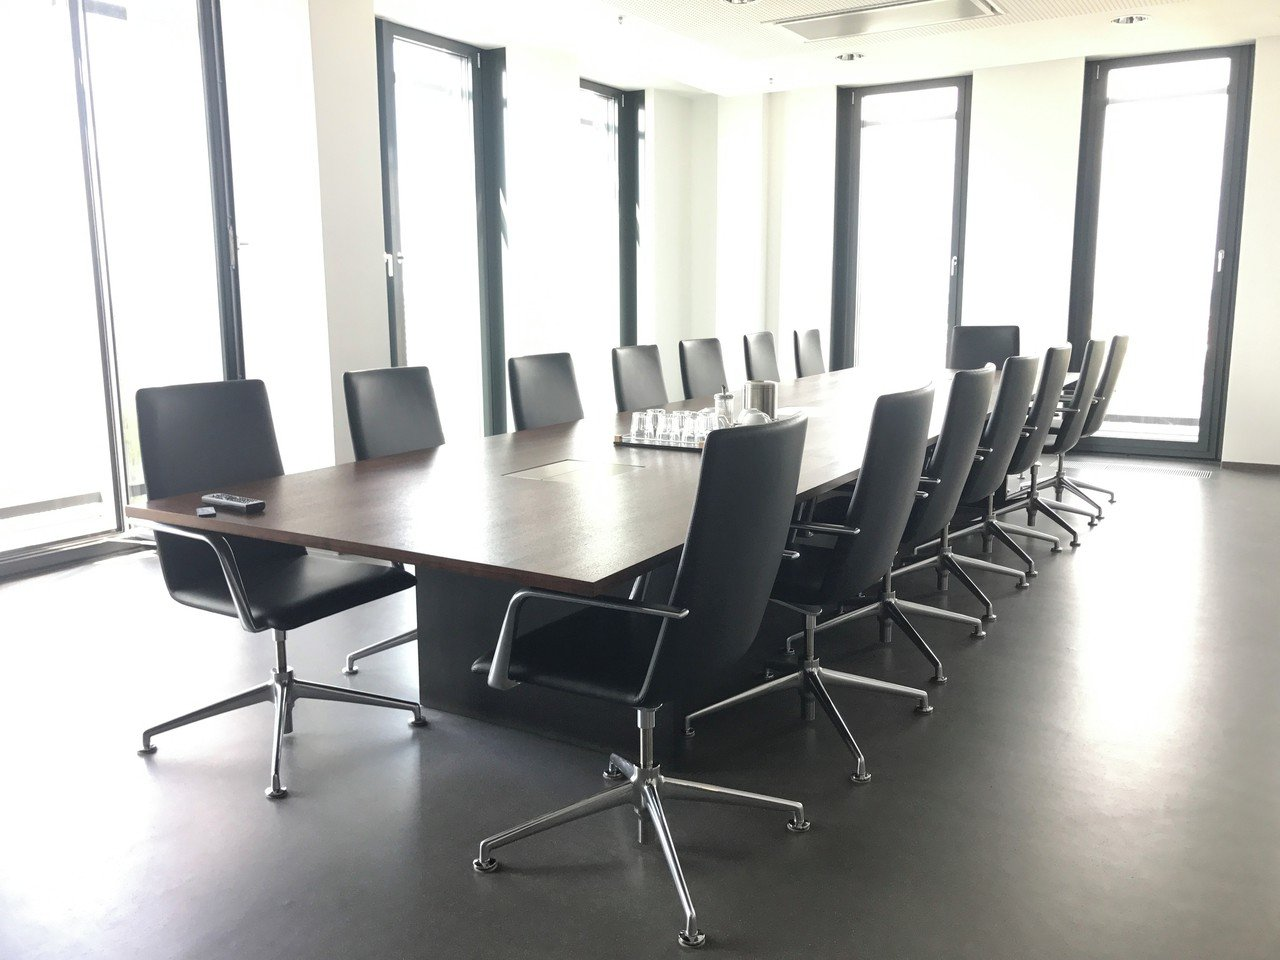 Berlin seminar rooms Meetingraum CONFERENCE ROOM BLACK image 2